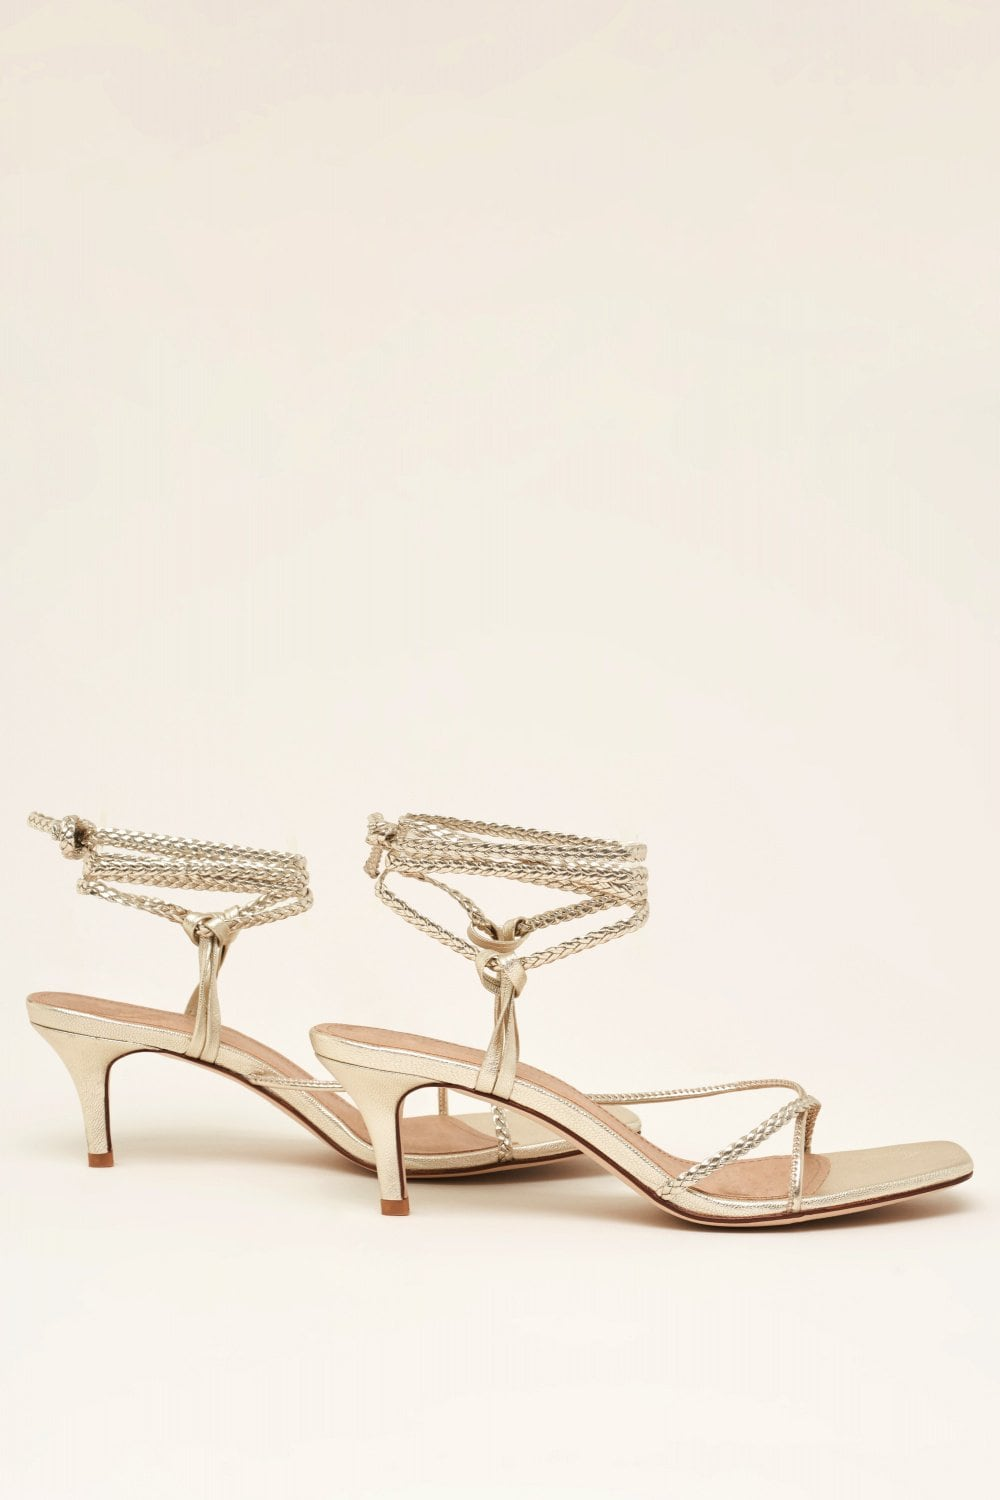 Sandals with thin interlaced straps - Salsa